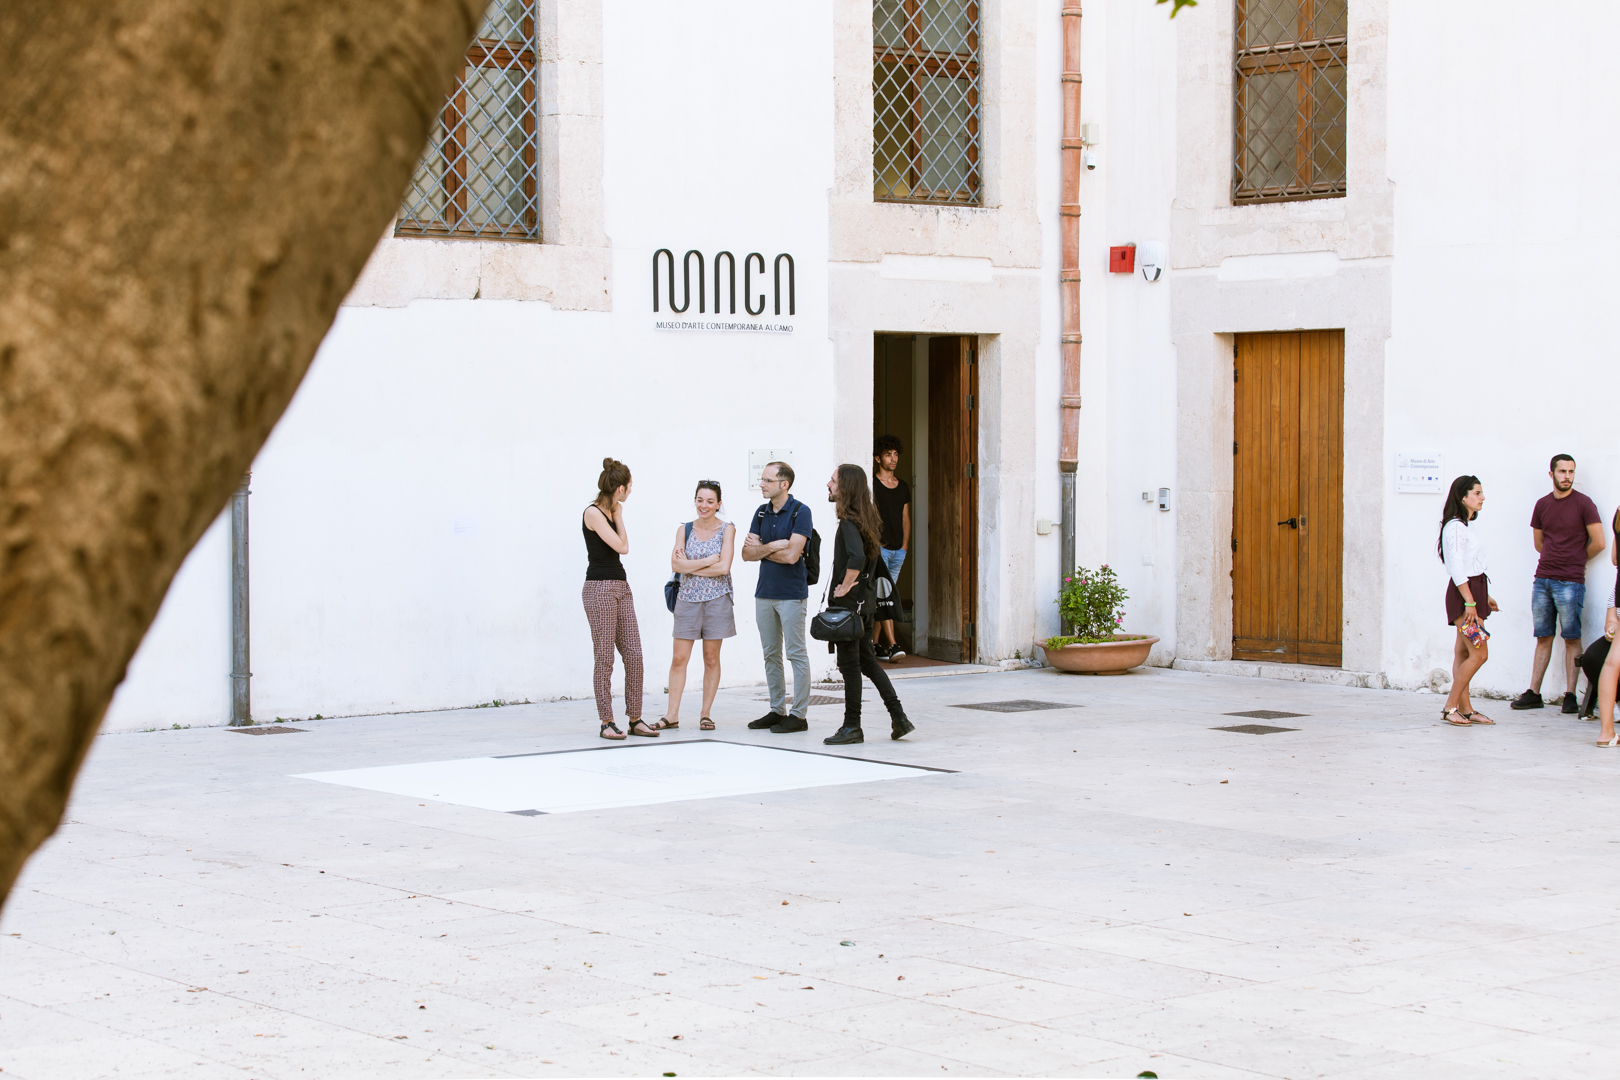 Carmelo Nicotra, Munumentu, 2018, print on pvc, Piazza Ciullo, Alcamo. Photo CAVE Studio